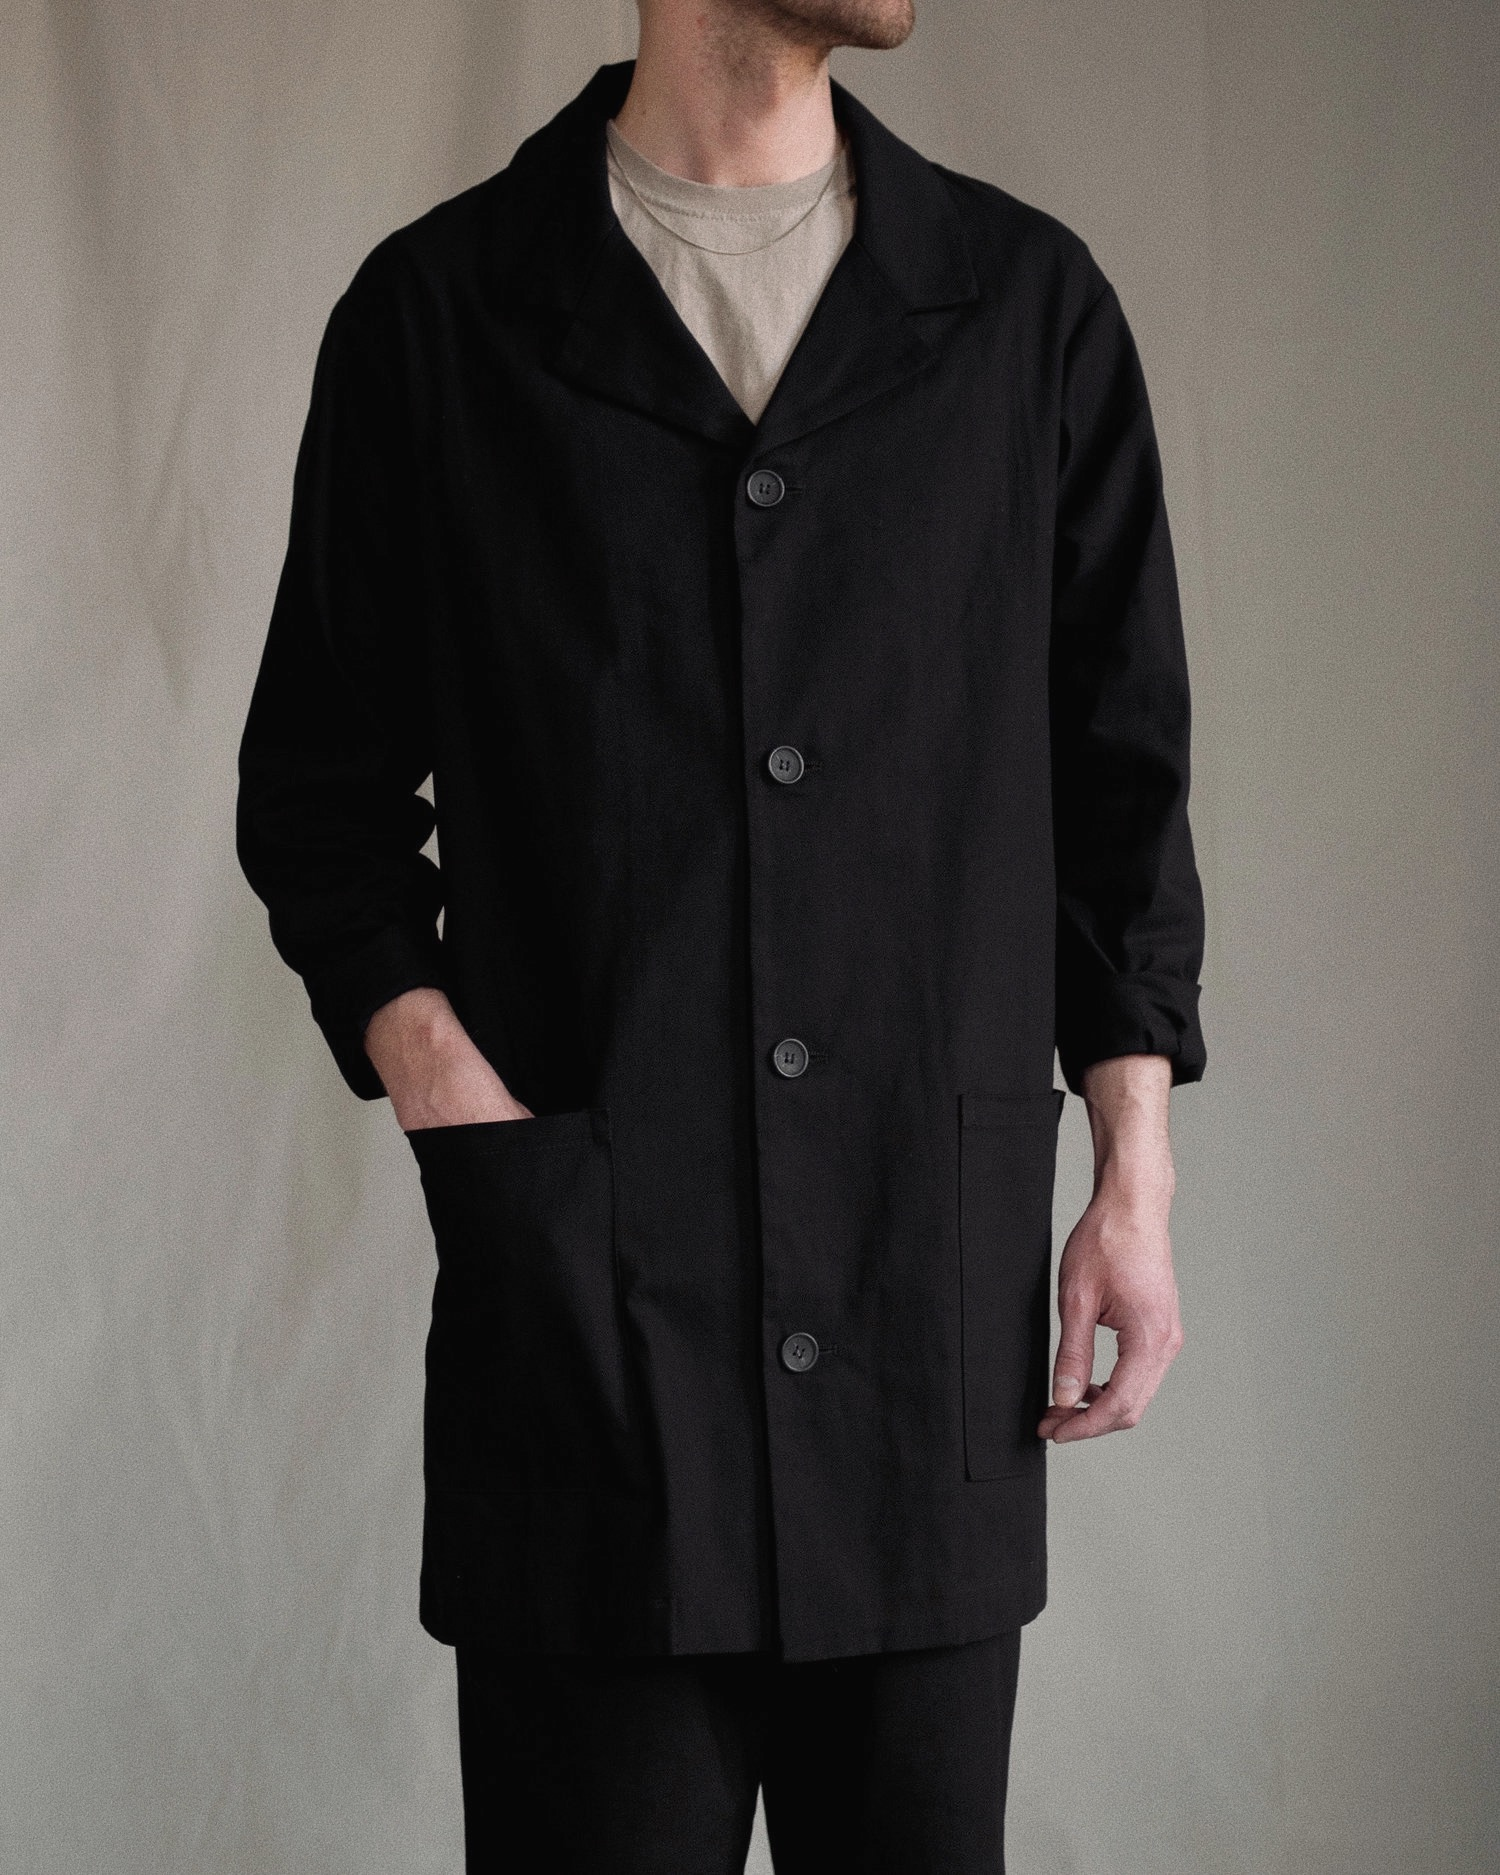 Aure Studio Painter´s Jacket Black